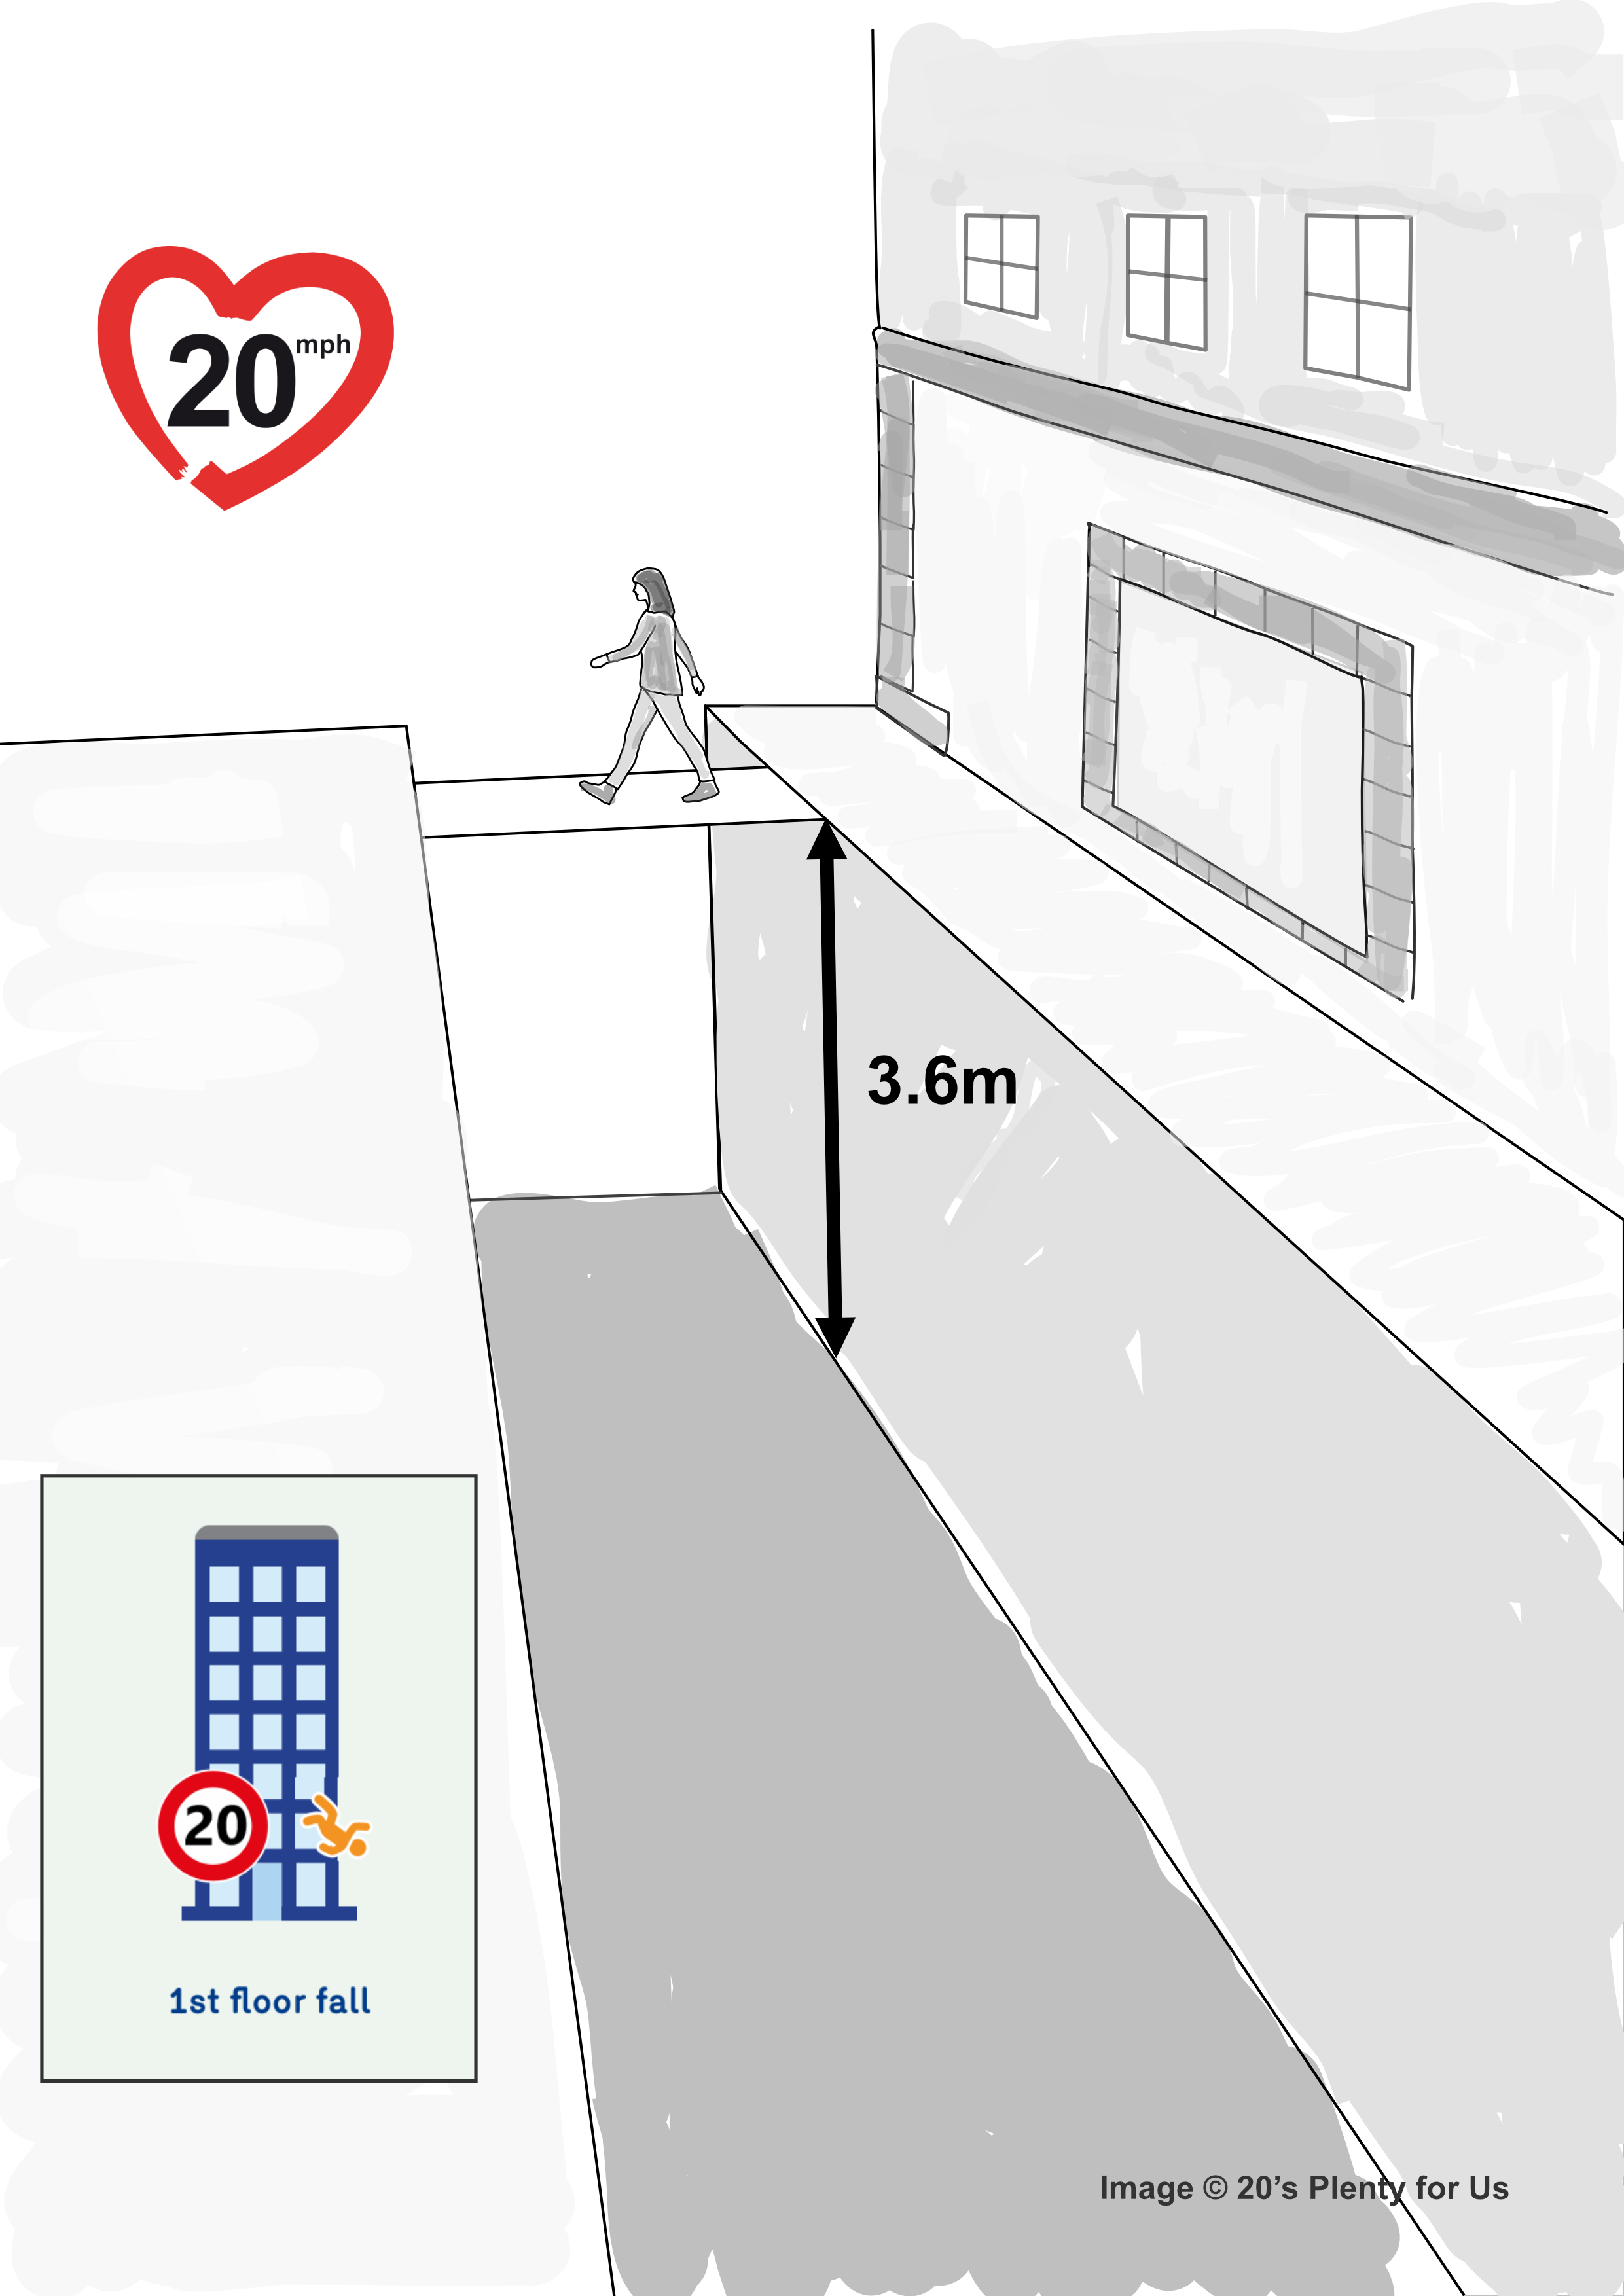 Being hit at 20mph is like falling from a 1st floor window or into a 2.6m trench